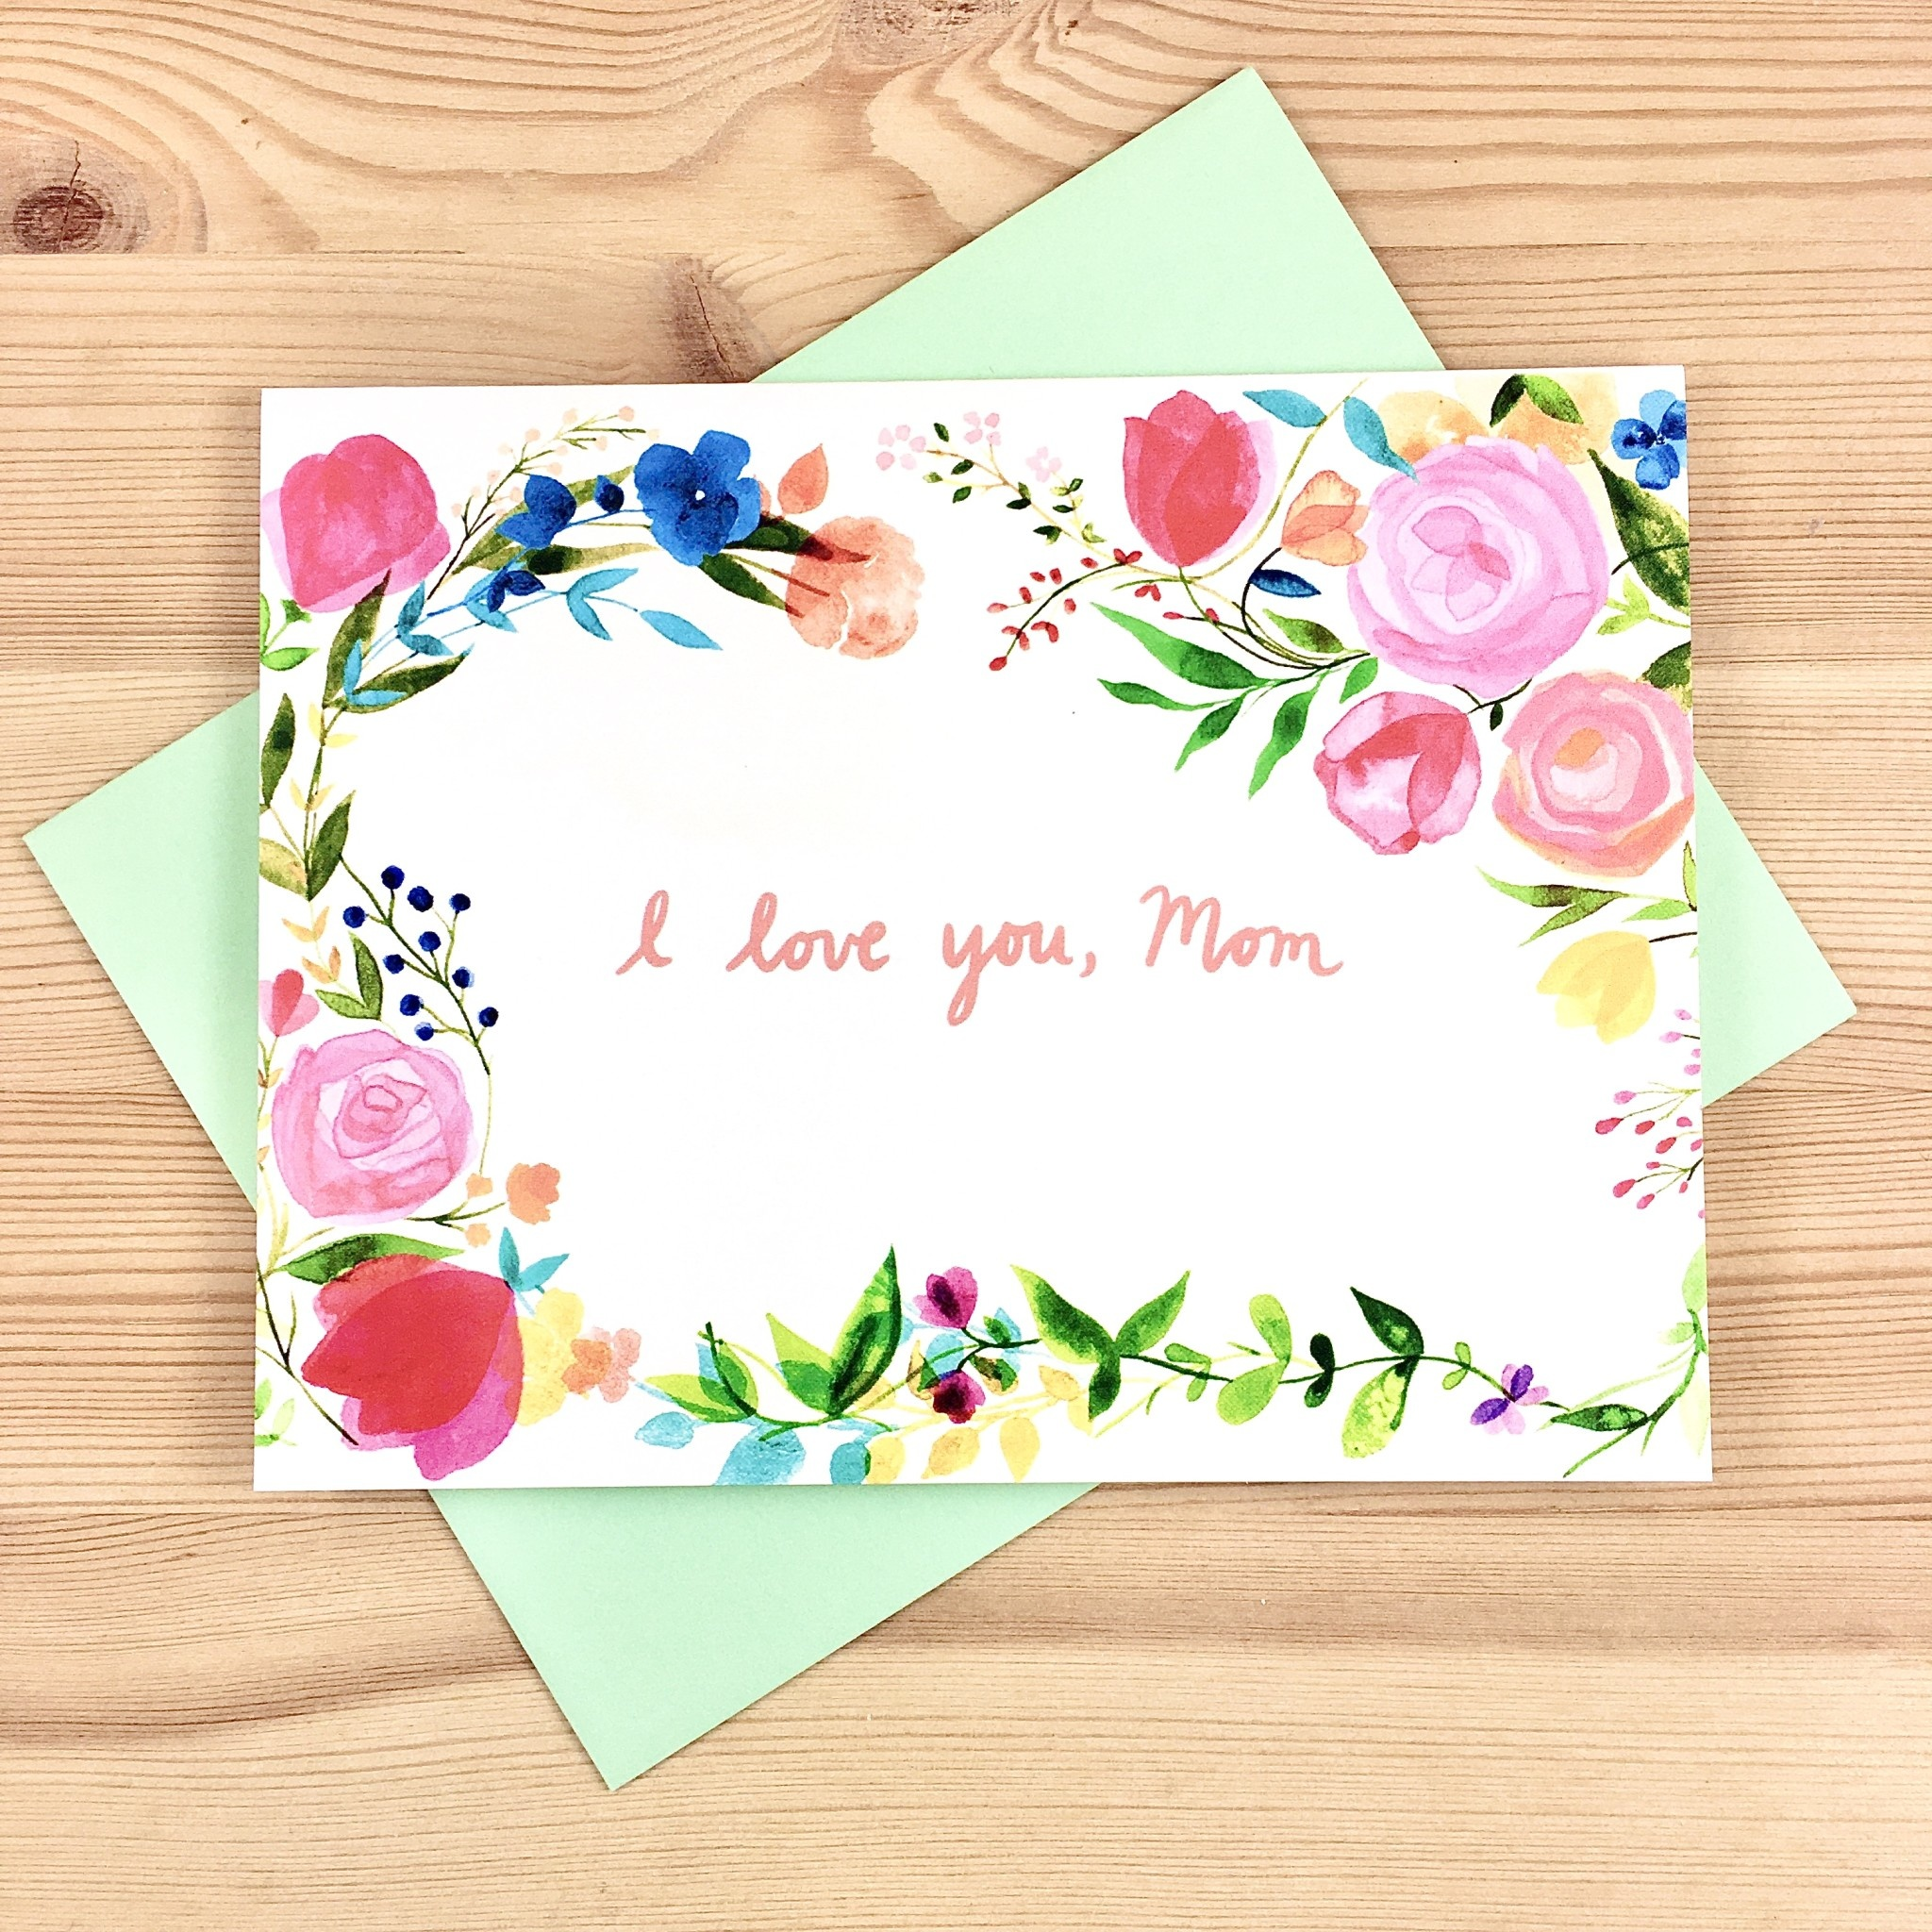 Meera Lee Patel Watercolor I Love You, Mom Florals Greeting Card